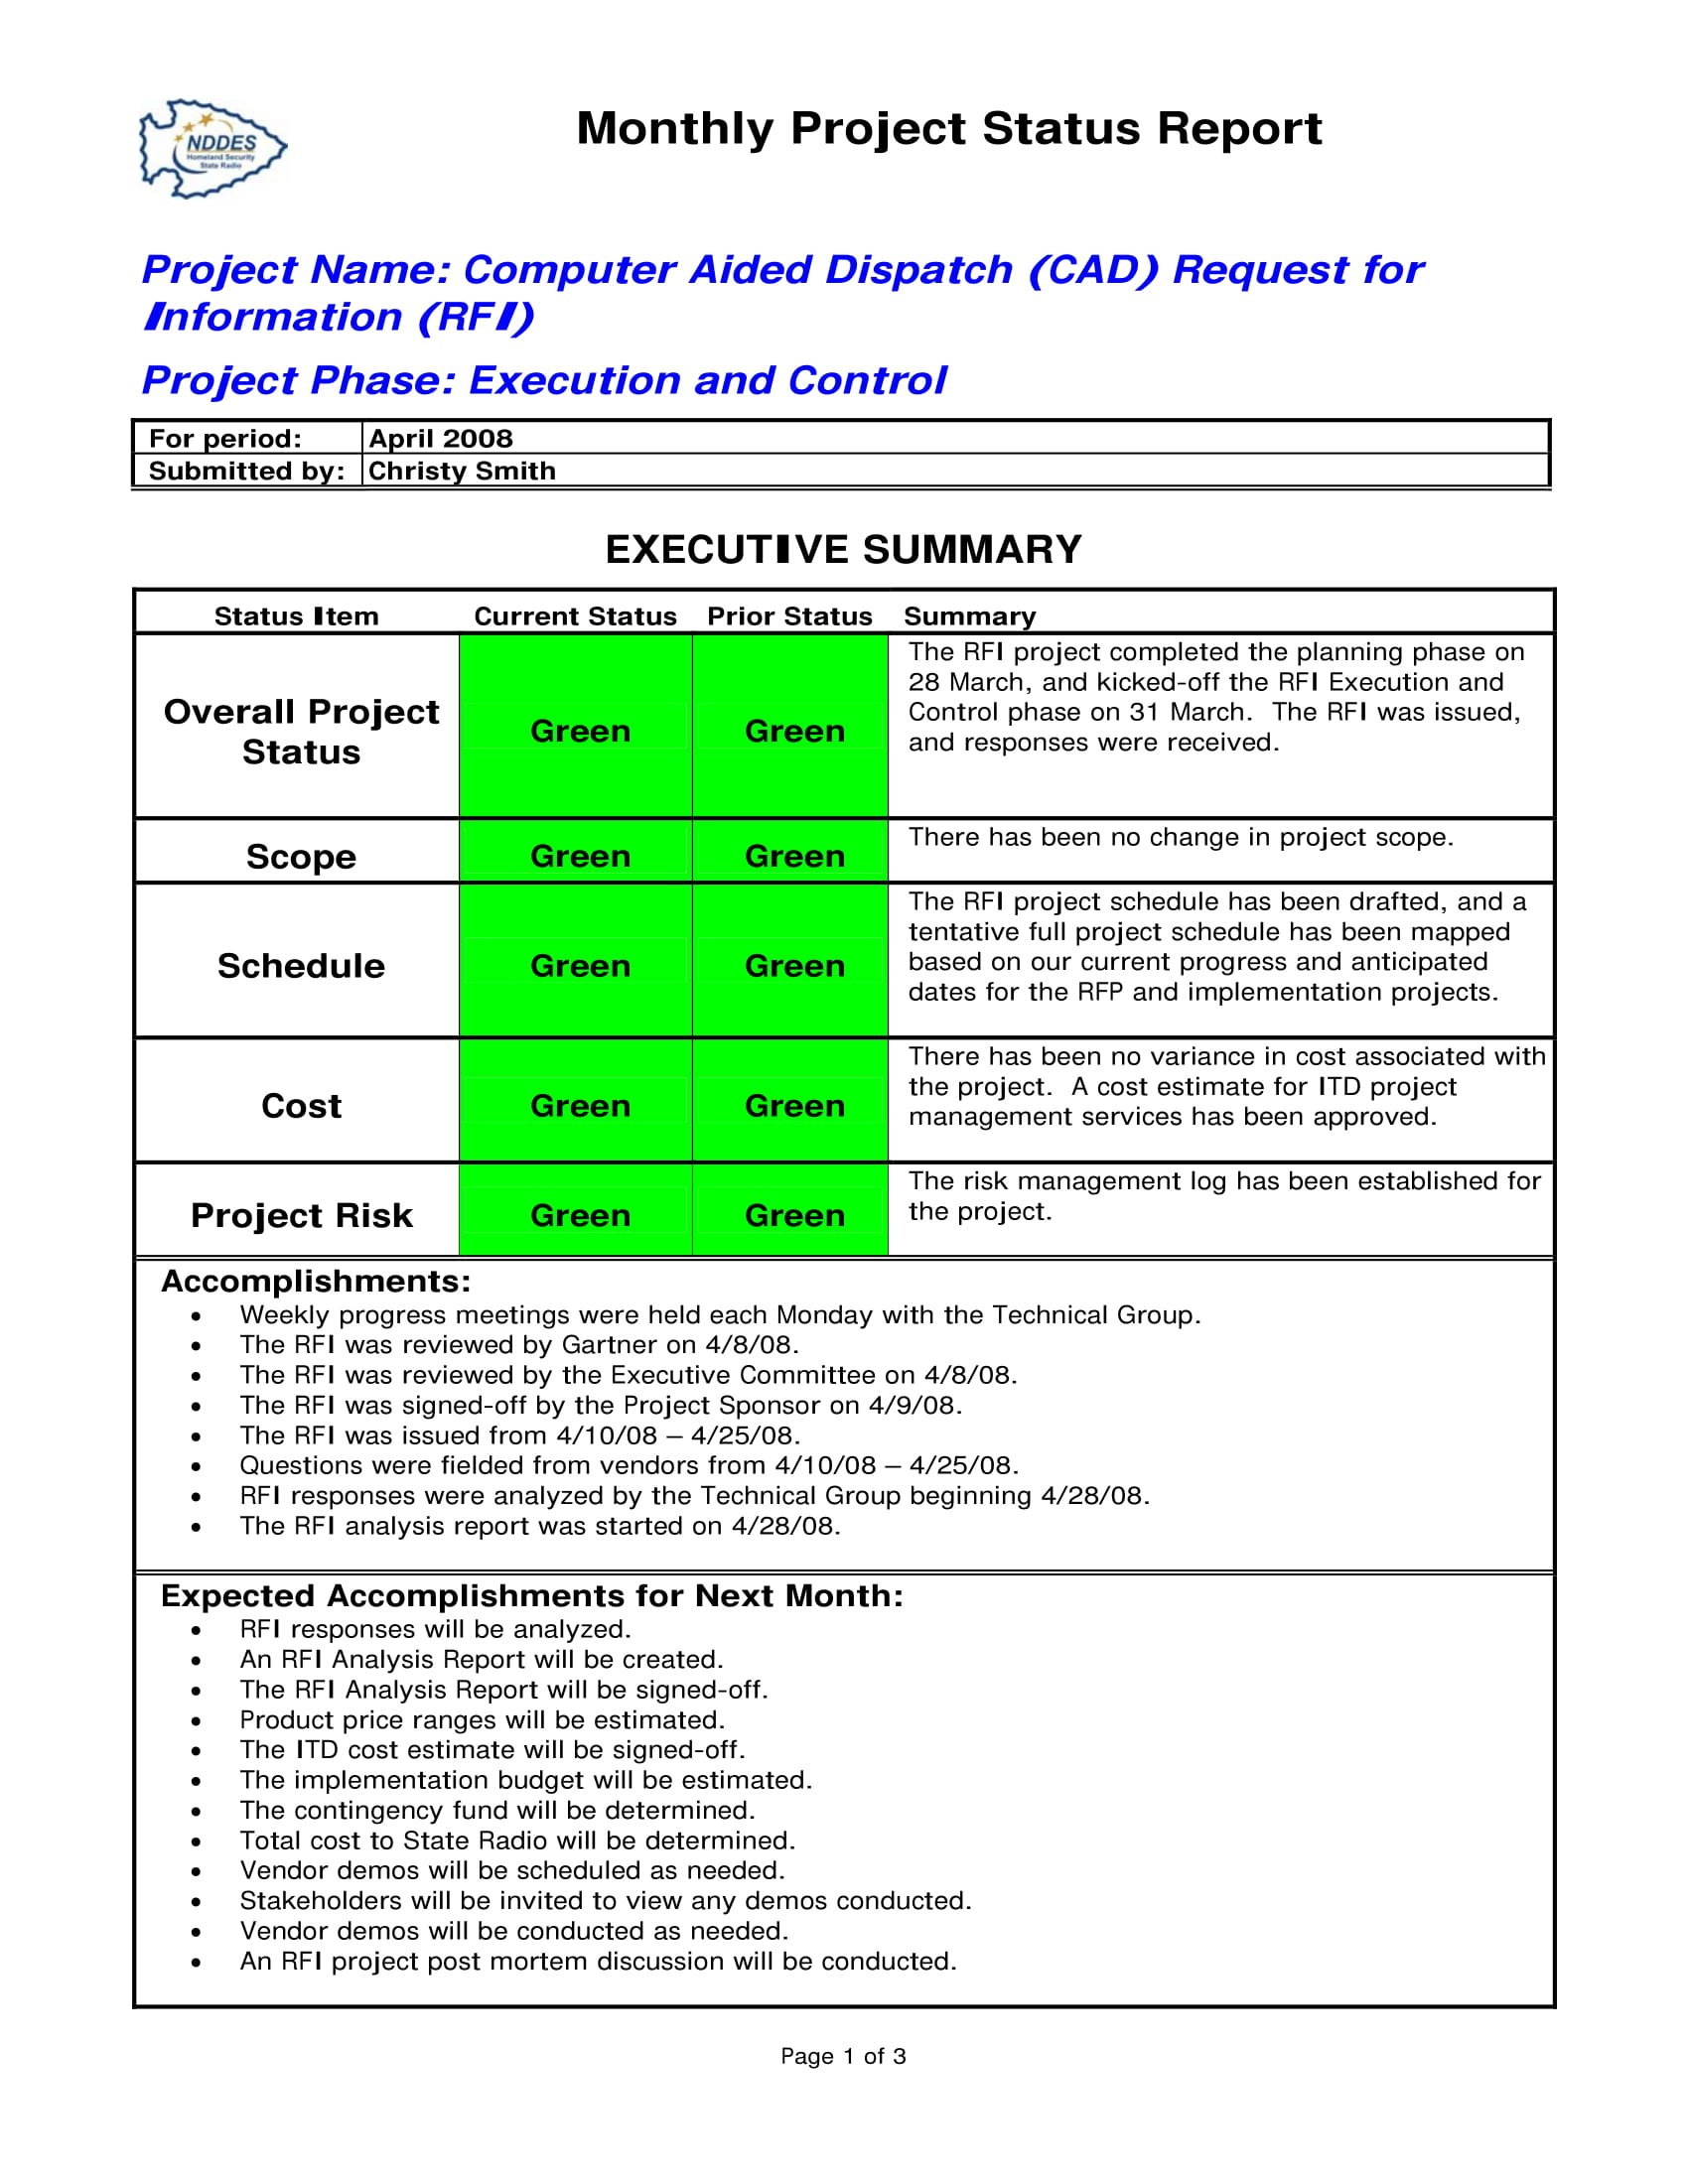 Status Report Examples  Doc Pdf  Examples Intended For Project Monthly Status Report Template